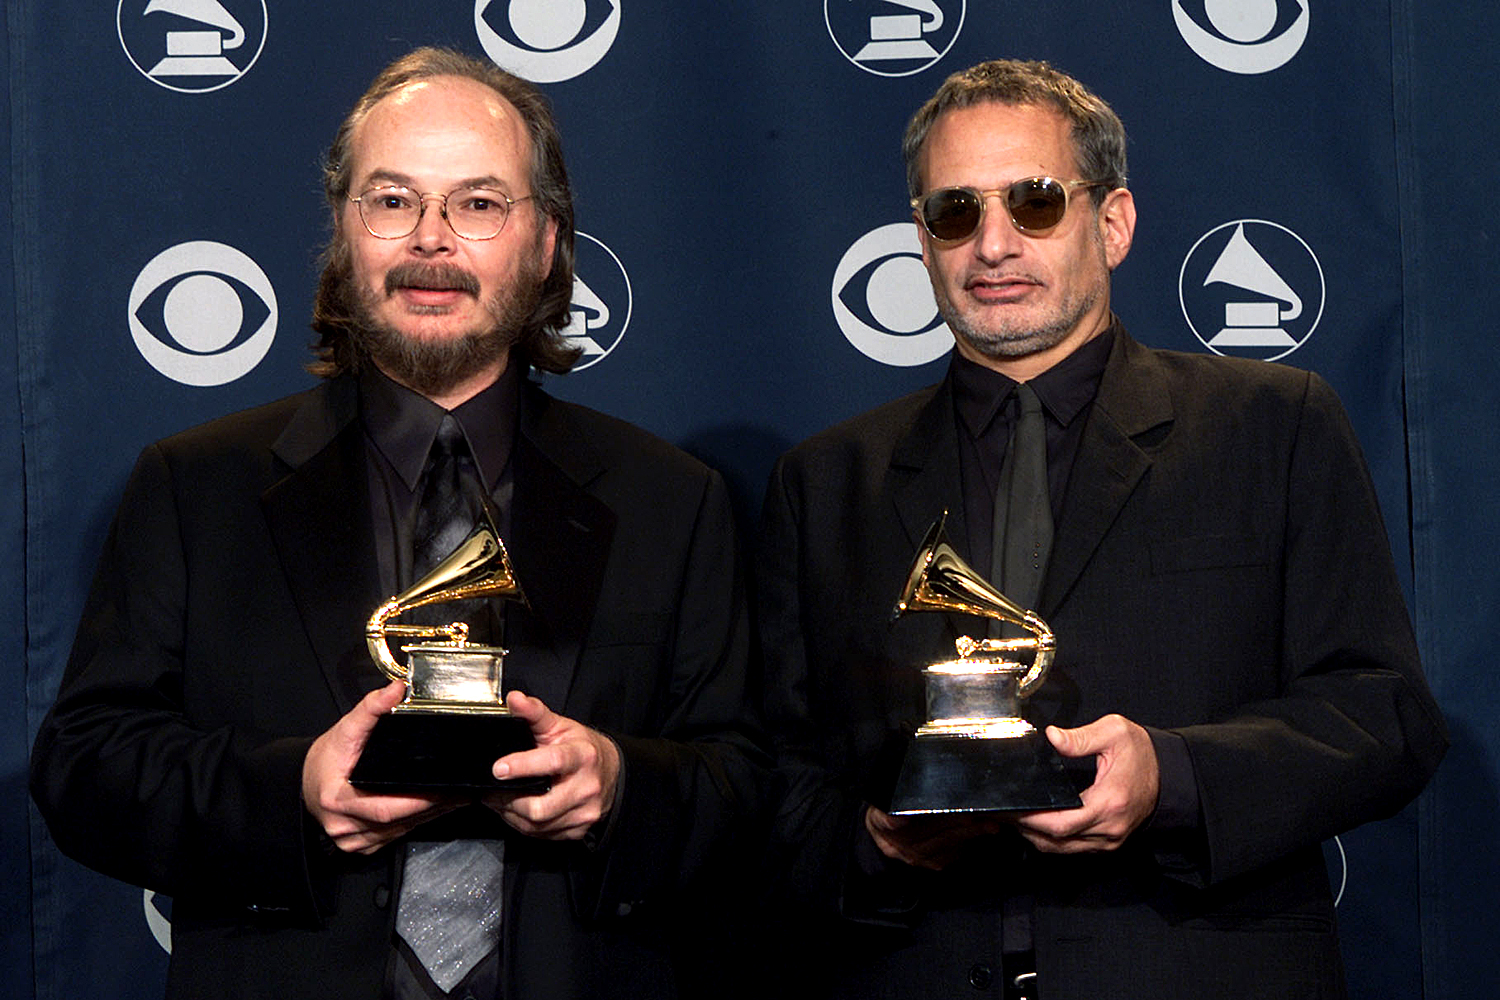 Steely Dan pose backstage with Grammy they won for Best Pop Vocal Album at the 43rd Annual Grammy Awards